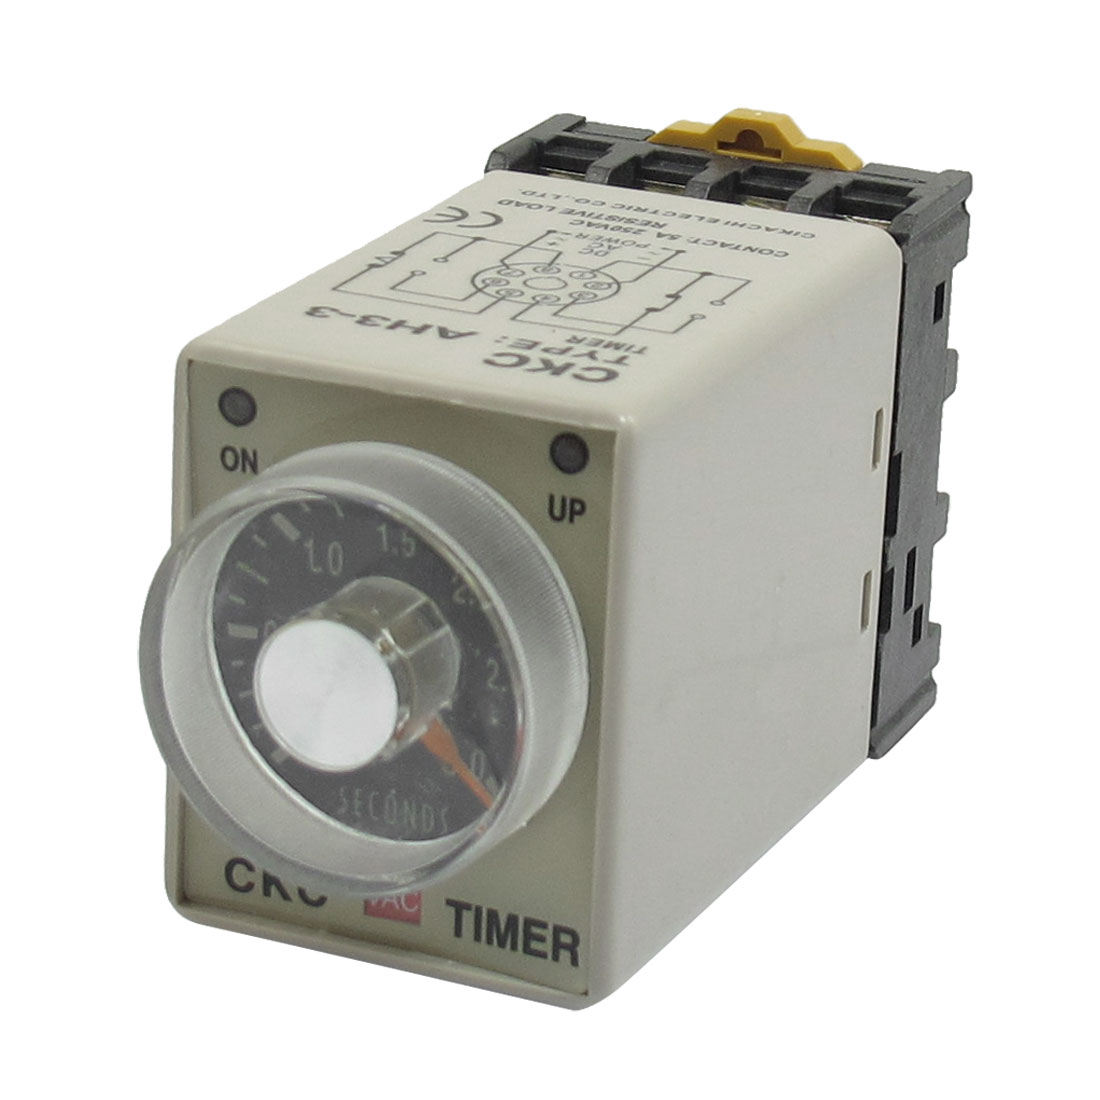 On/Up LED Indicator 0-3s 8P AH3-3 Power Timing Relay 220VAC + Base